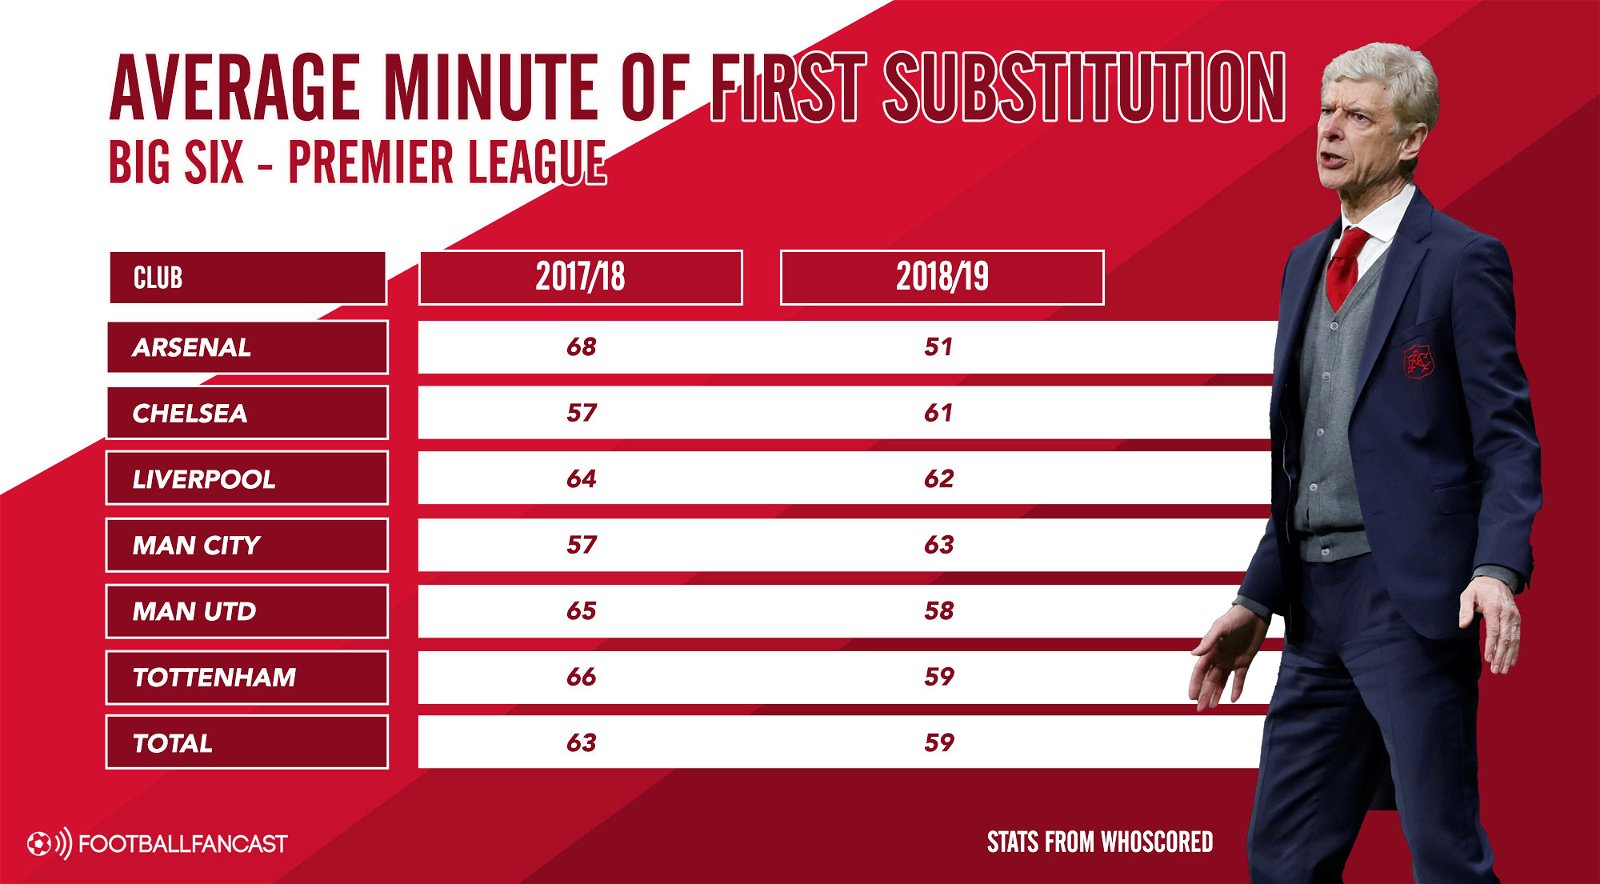 Average minute of first substitution